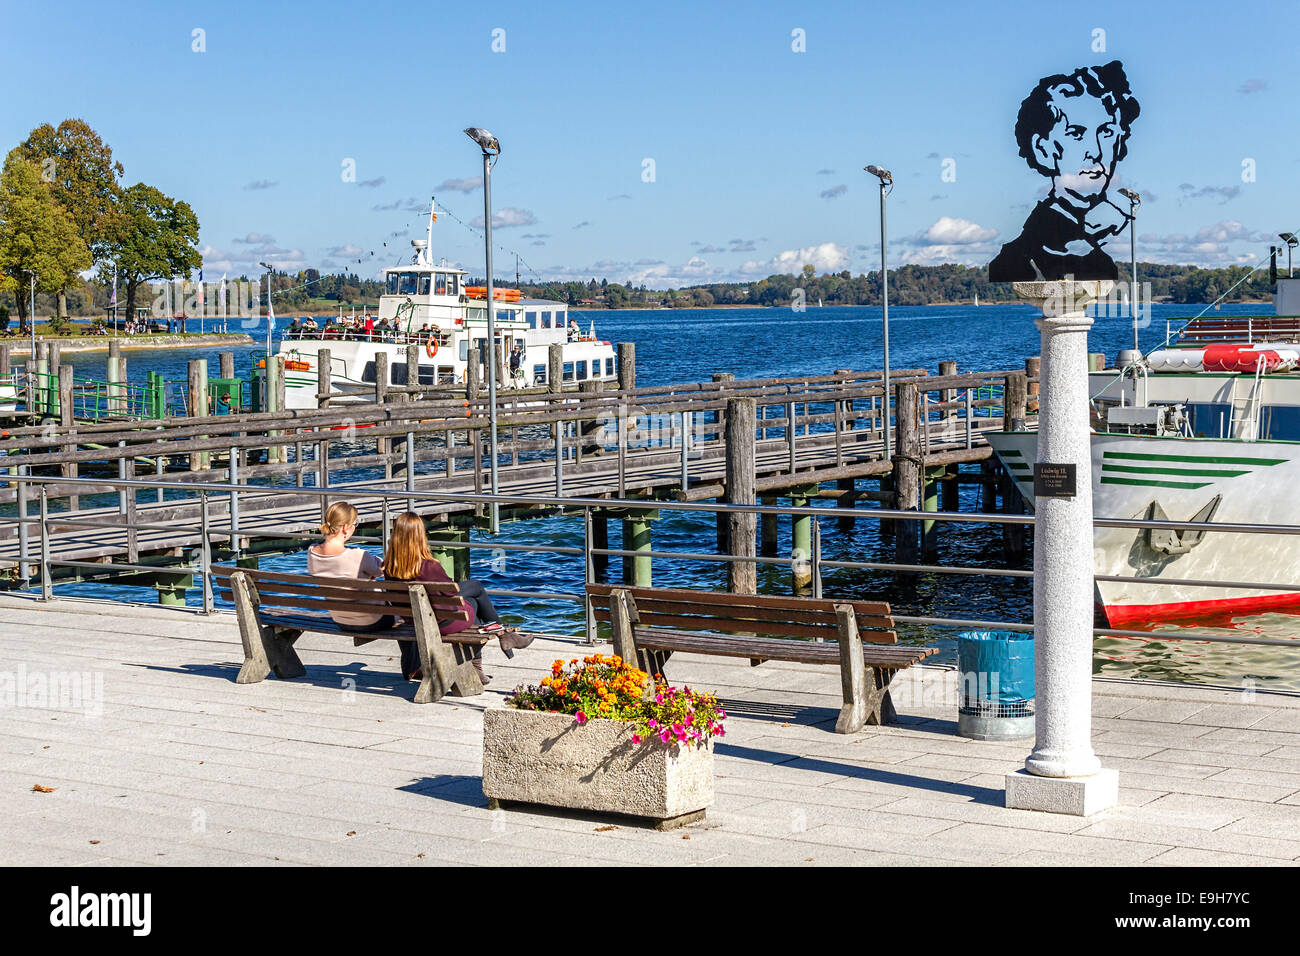 2 people sitting on bench seat at Boat Harbour, Prien Stock, Chiemsee, Chiemgau, Upper Bavaria , Germany, Europe. Stock Photo